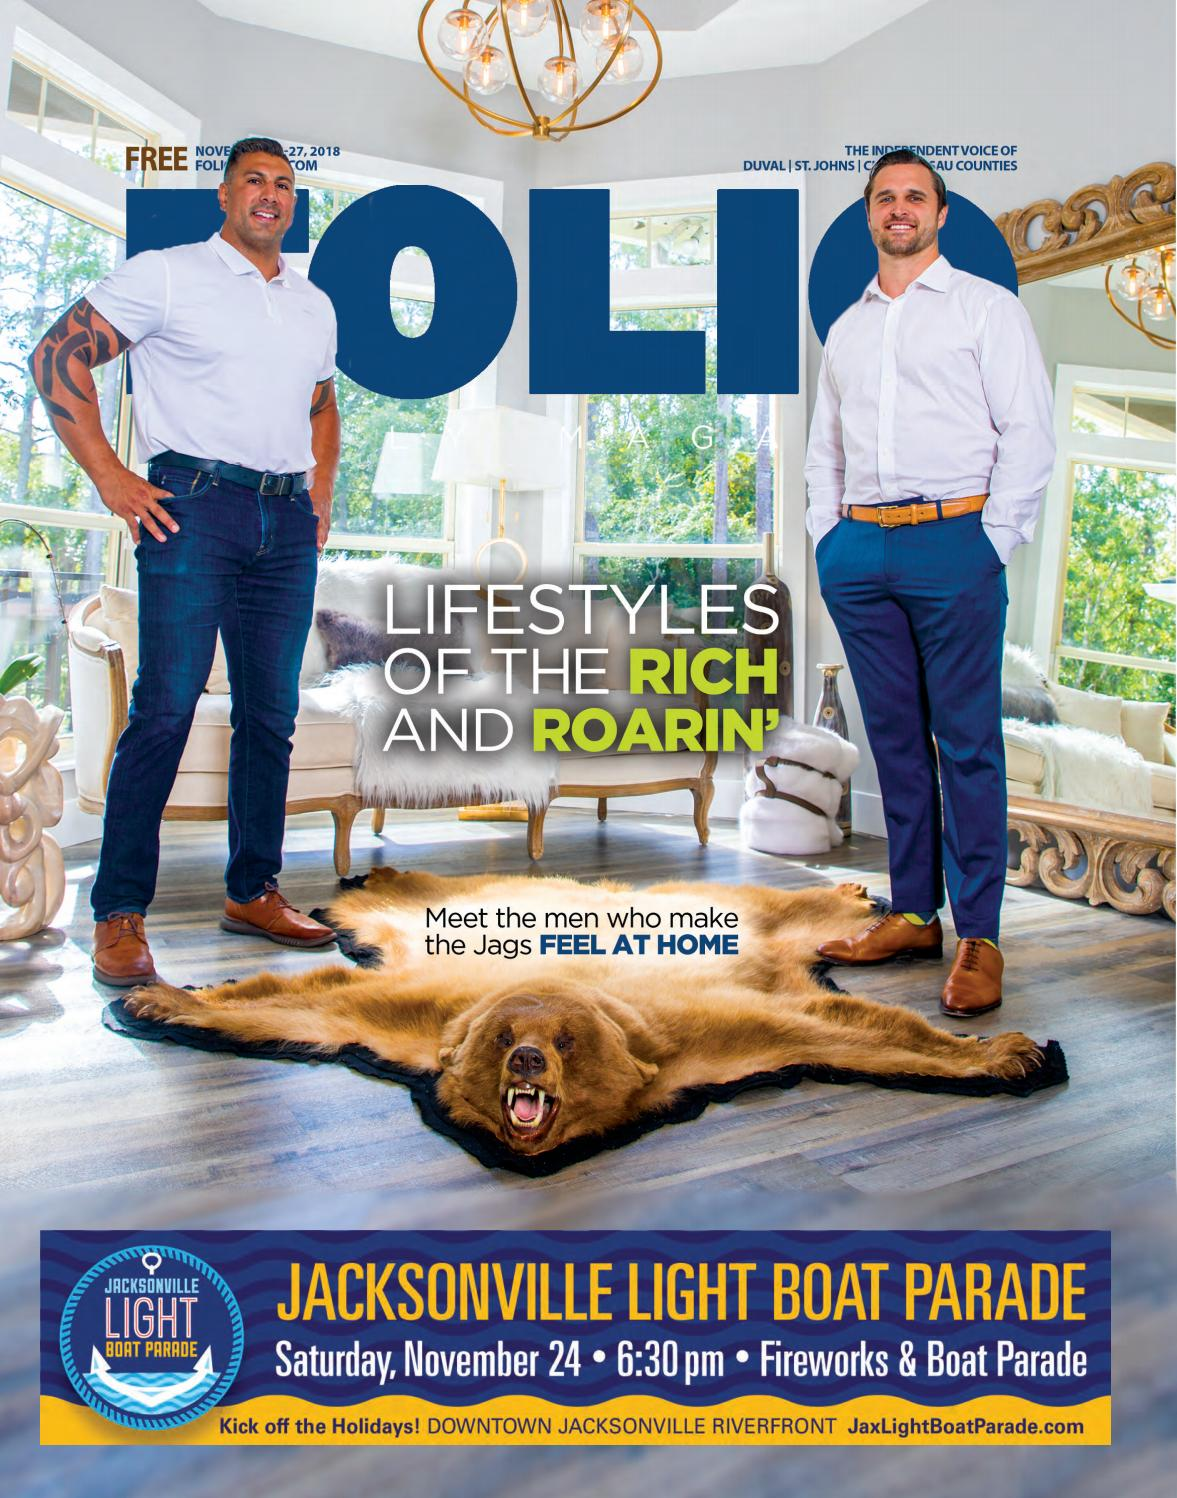 quality design a611e cbb6d Lifestyles of the Rich and Roarin  by Folio Weekly - issuu